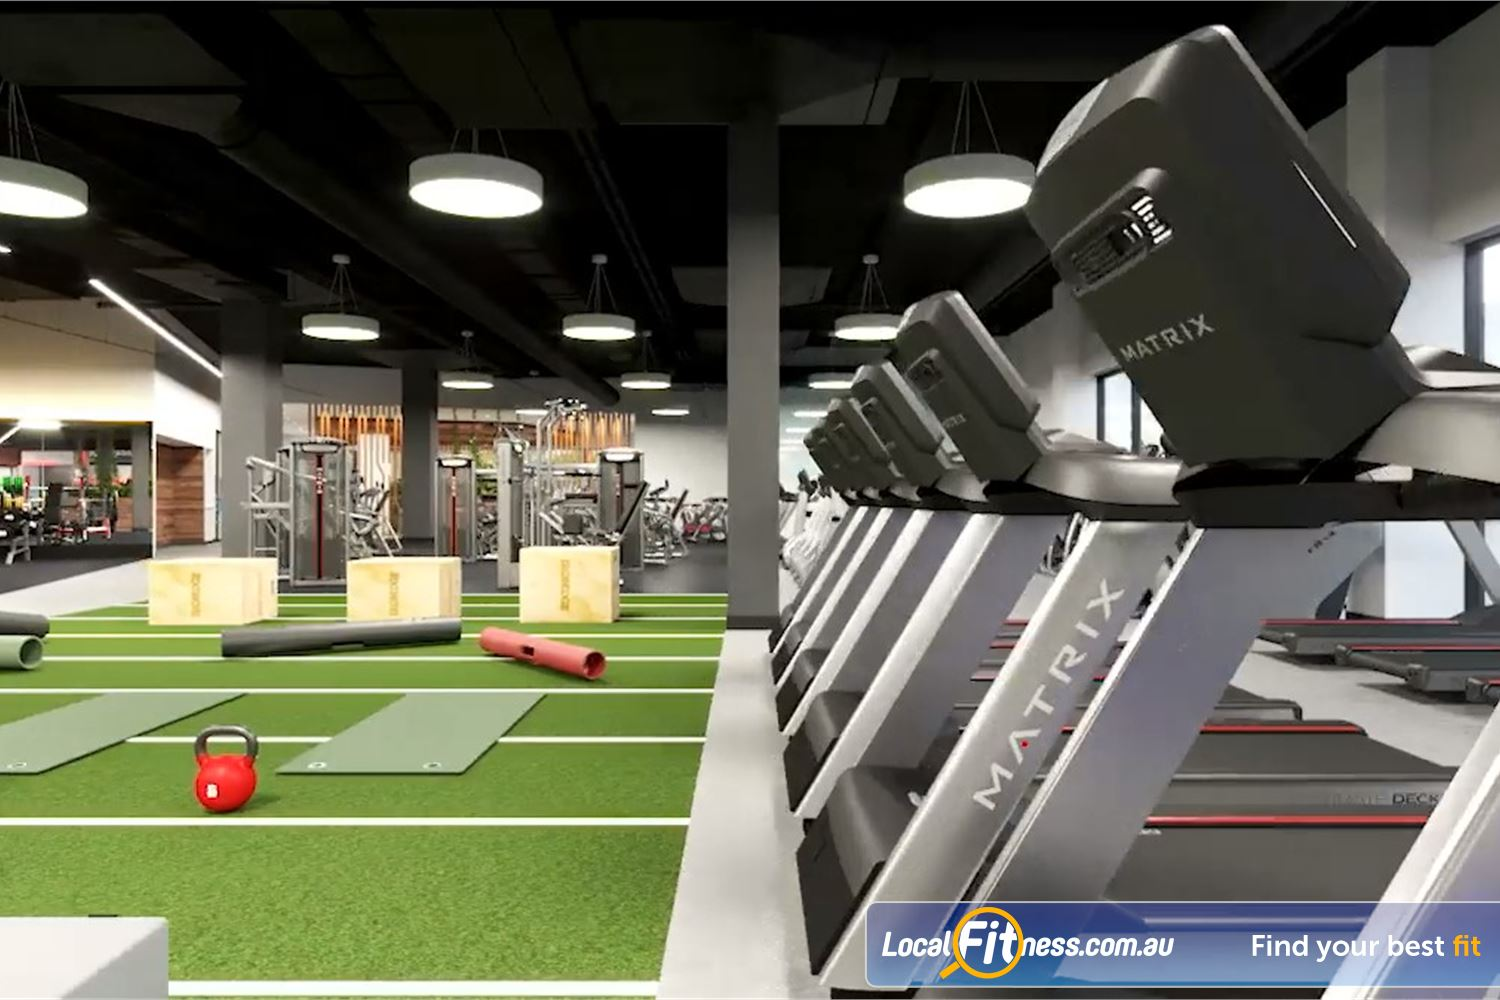 Goodlife Health Clubs Near Torrington Our state of the art cardio includes personal screens to watch your favourite shows.